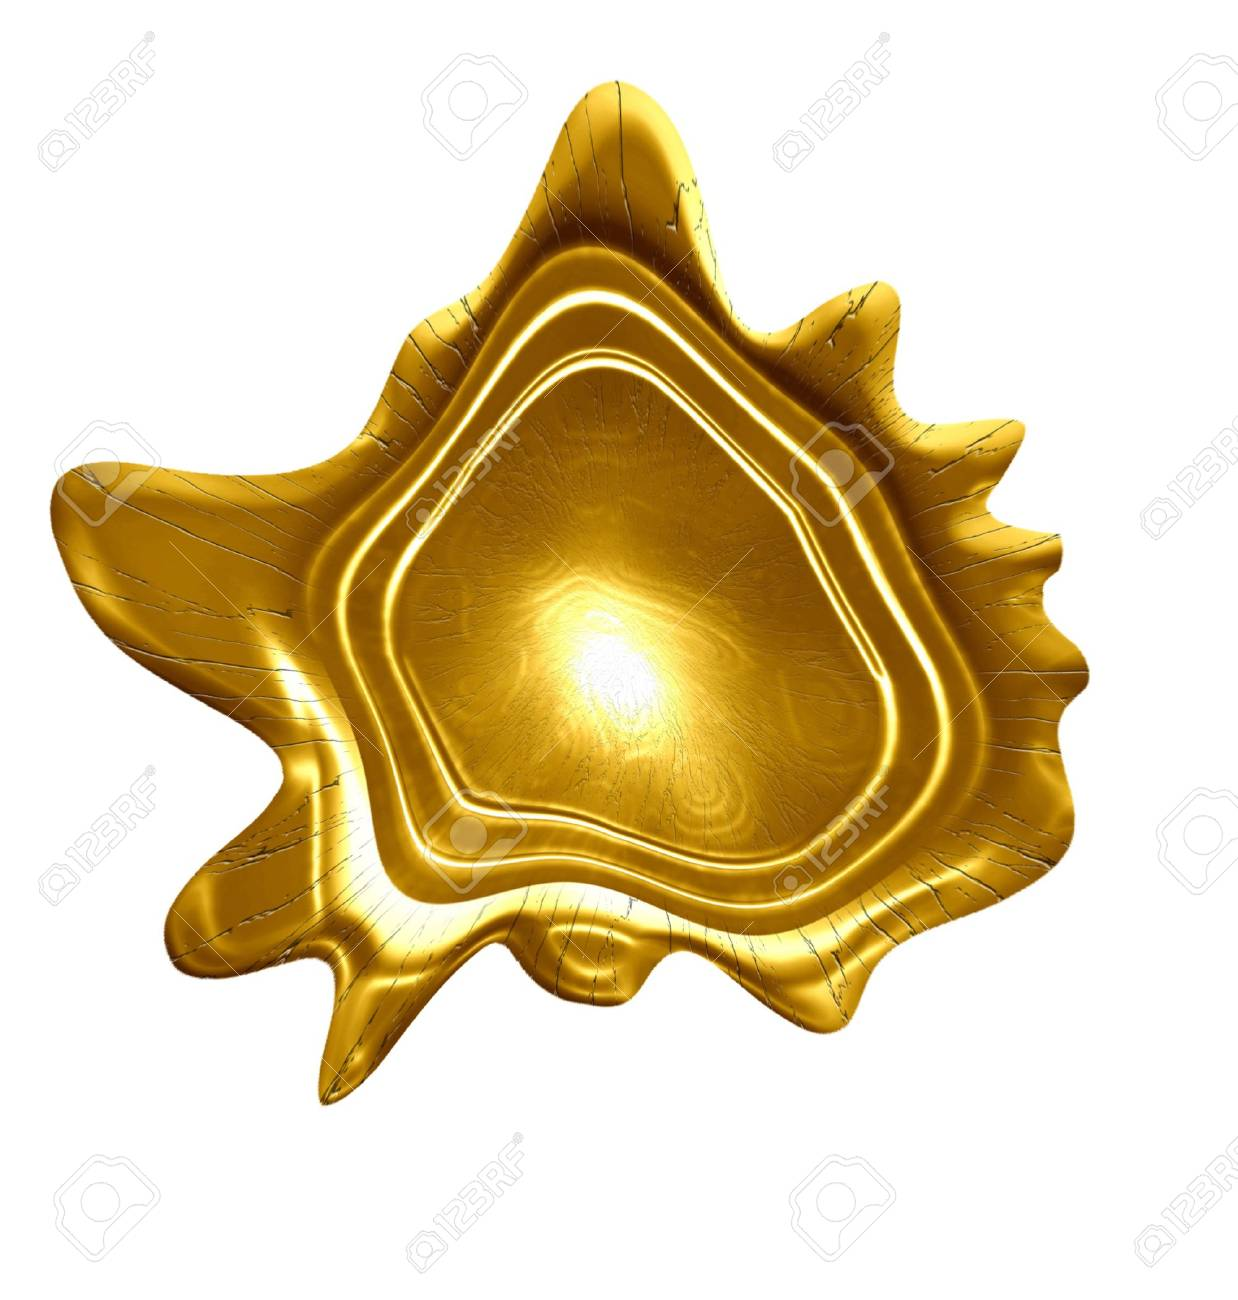 golden medal on a solid white background Stock Photo - 5009088